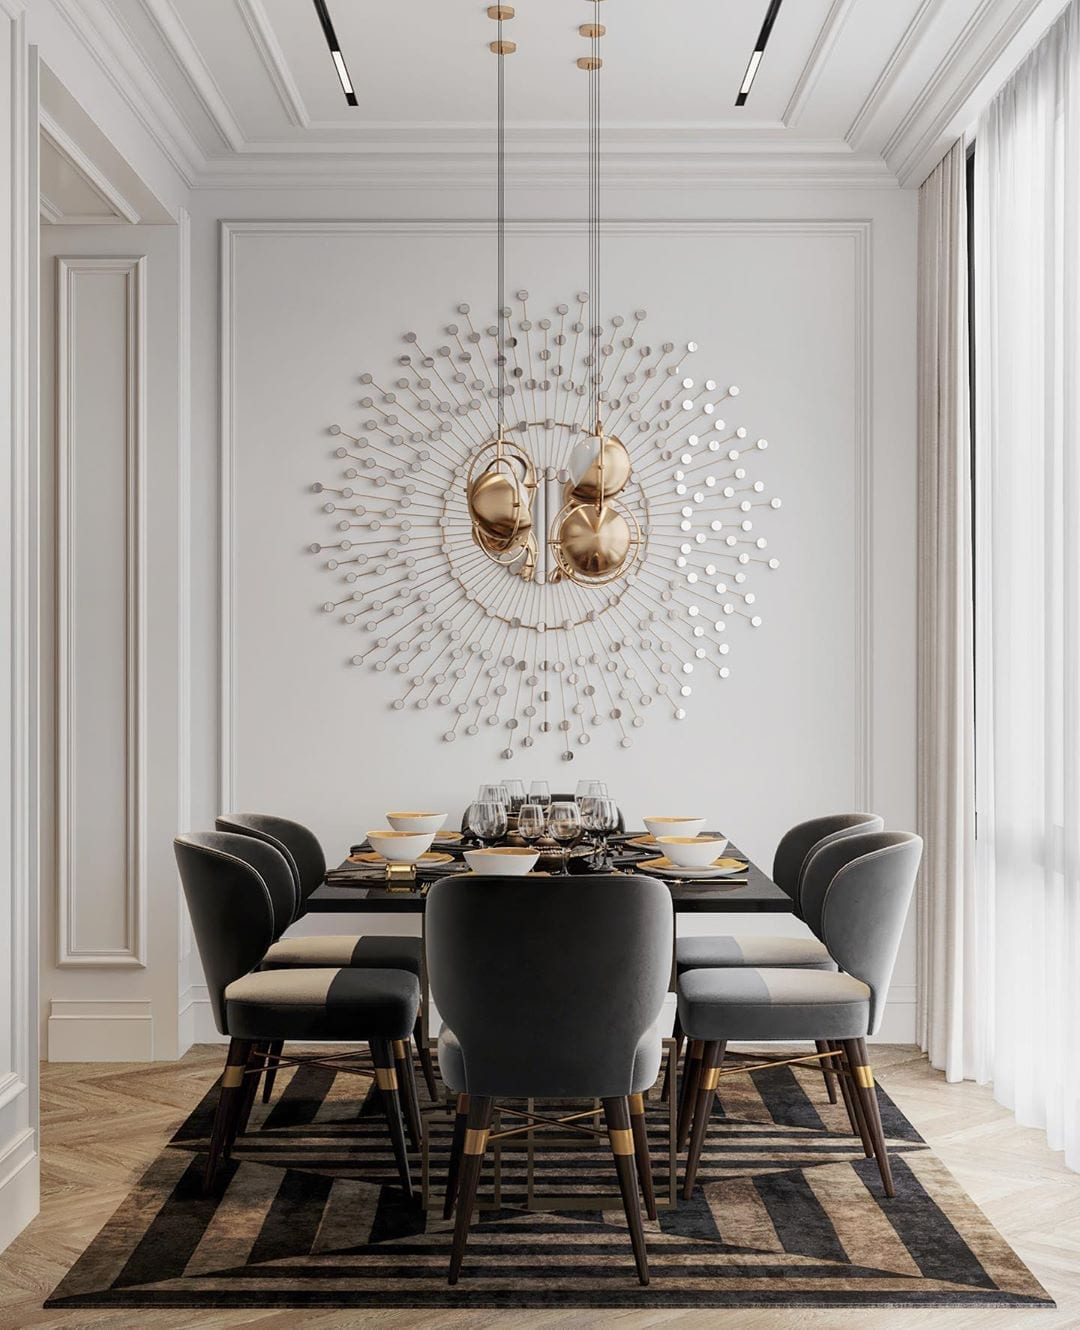 residential project moscow russia louis dining chair 1 Residential Project in Moscow